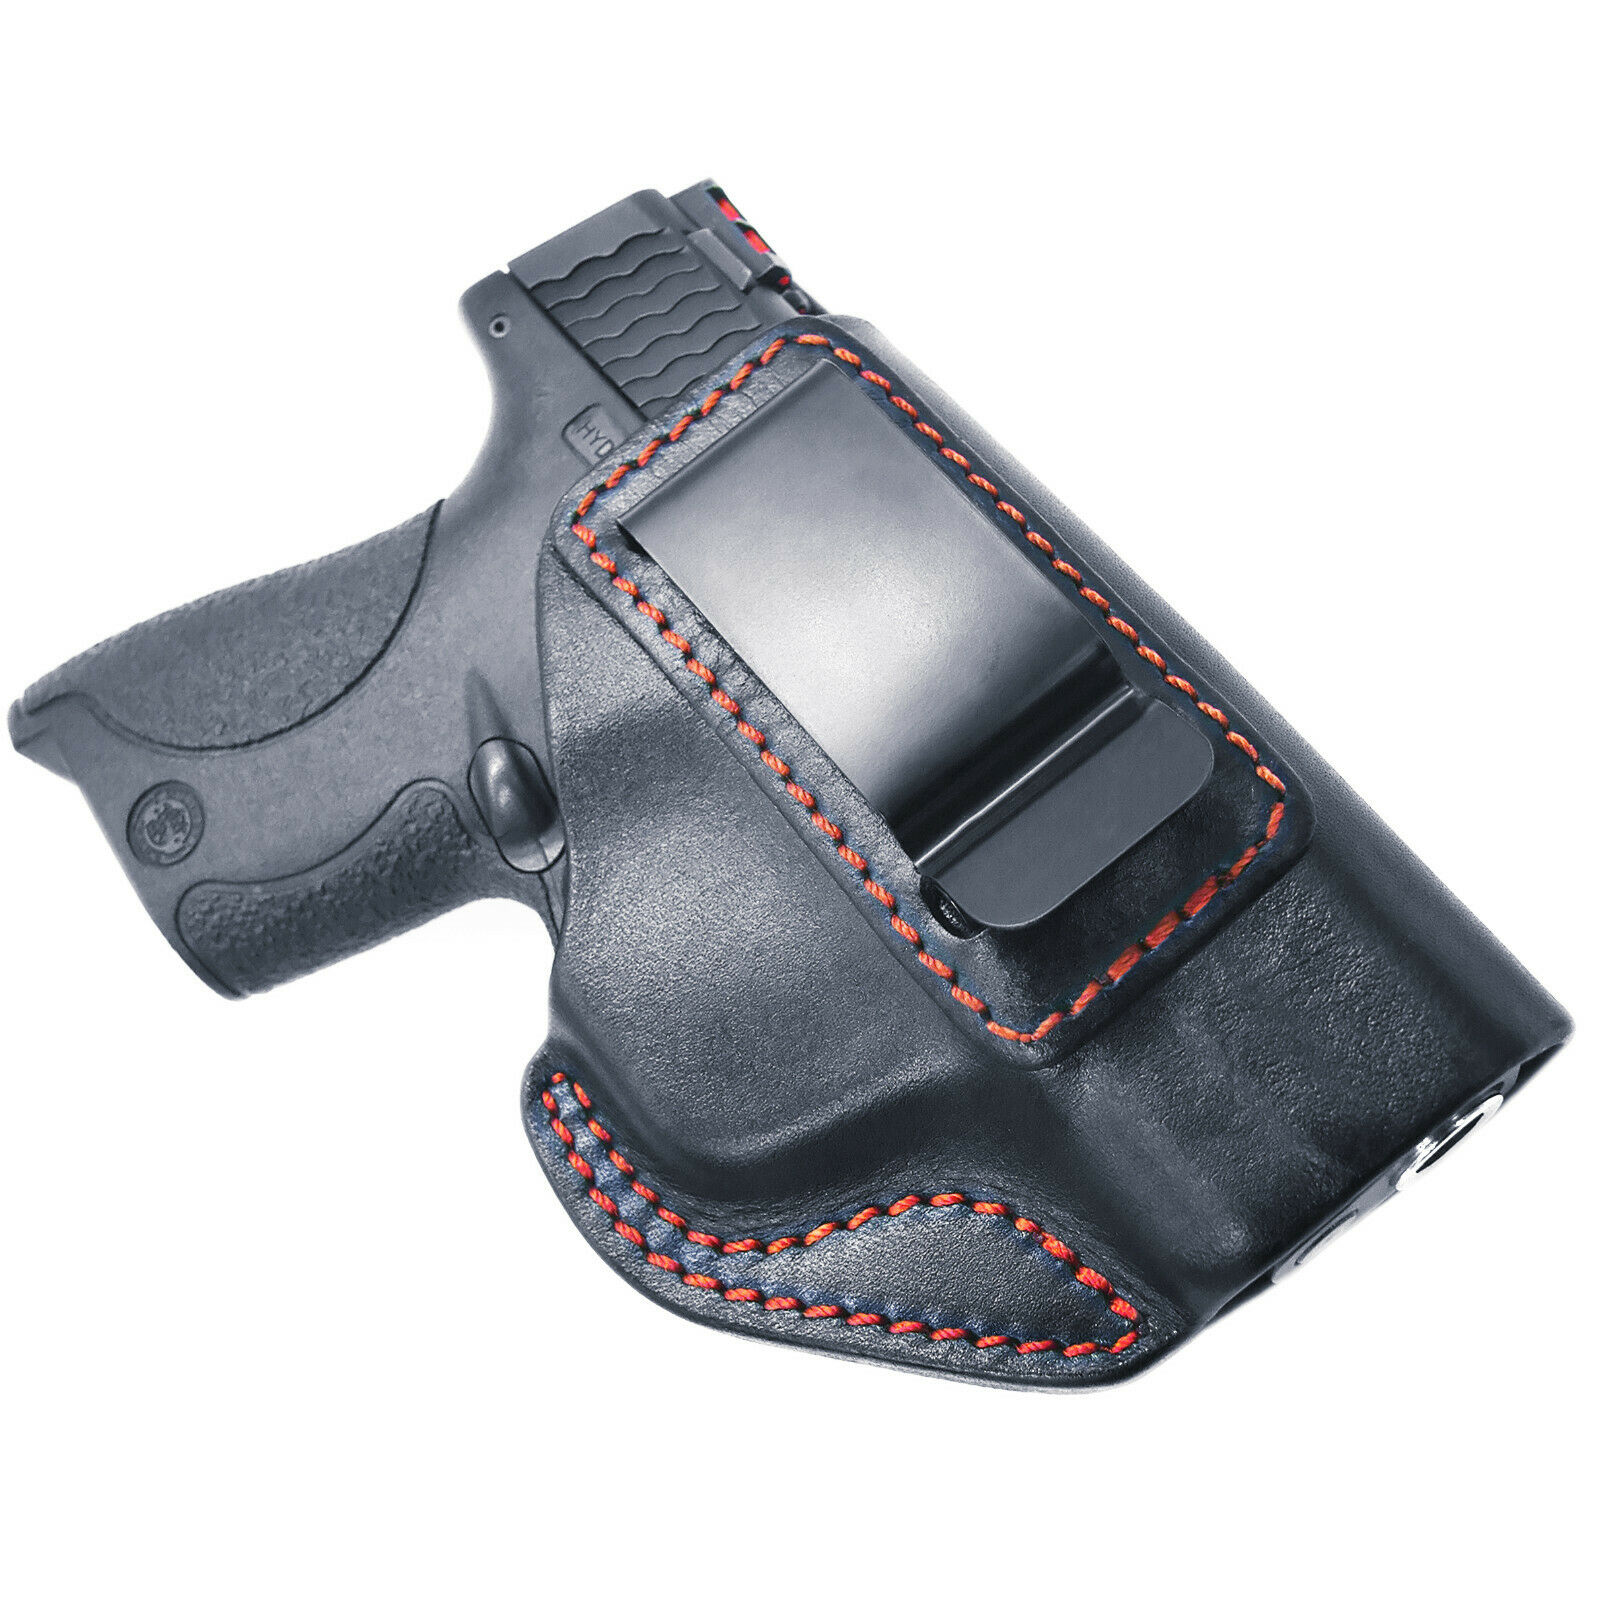 Gun Holster for Smith /& Wesson 40 9mm With Laser for sale online